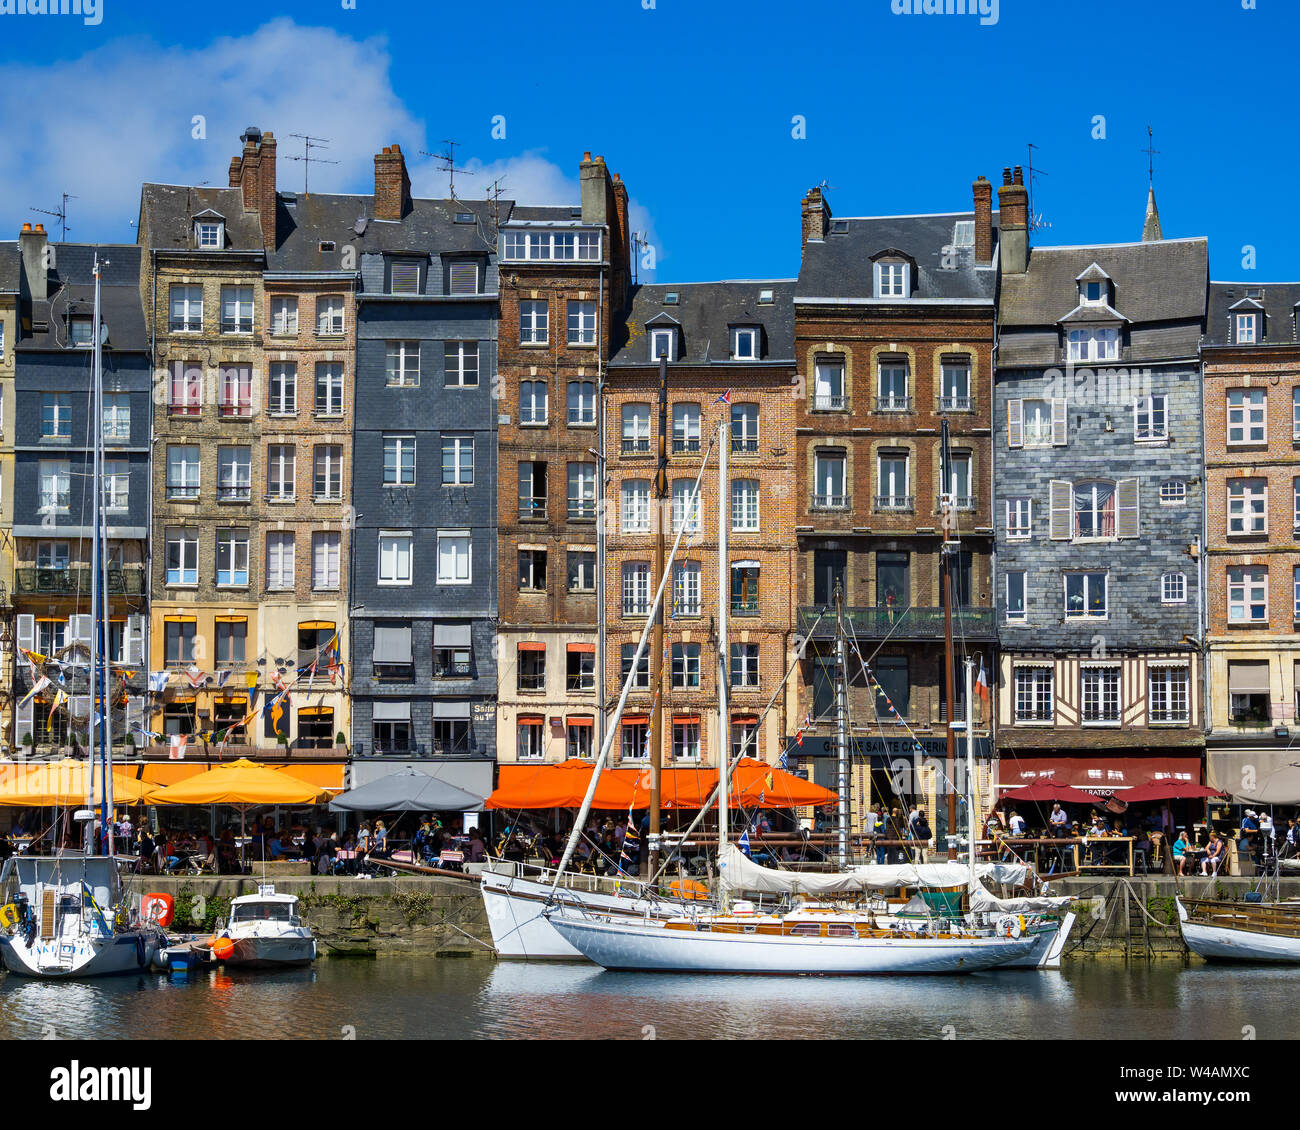 Honfleur Vieux-Bassin (Old Dock) skyline or cityscape on a sunny day of summer, Normandy, France. Stock Photo